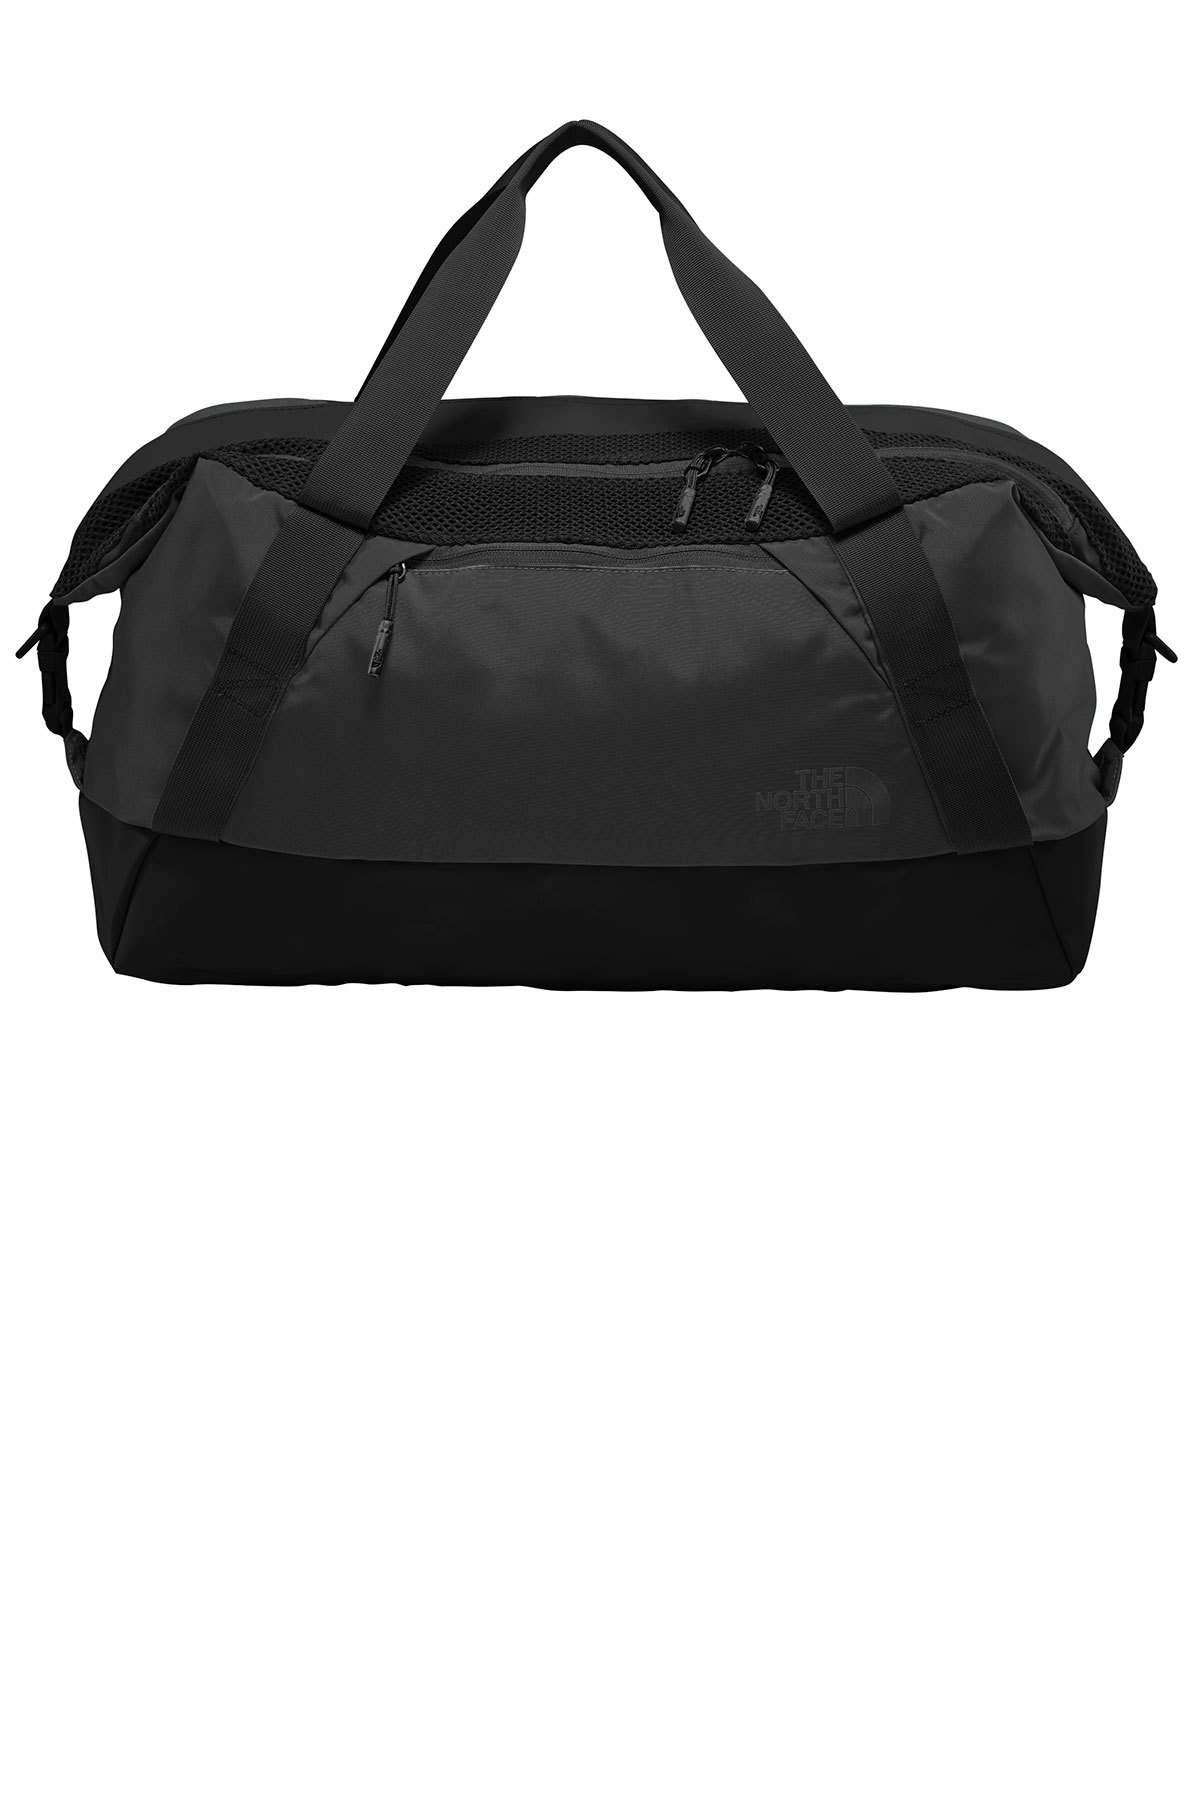 The North Face NF0A3KXX - Apex Duffel